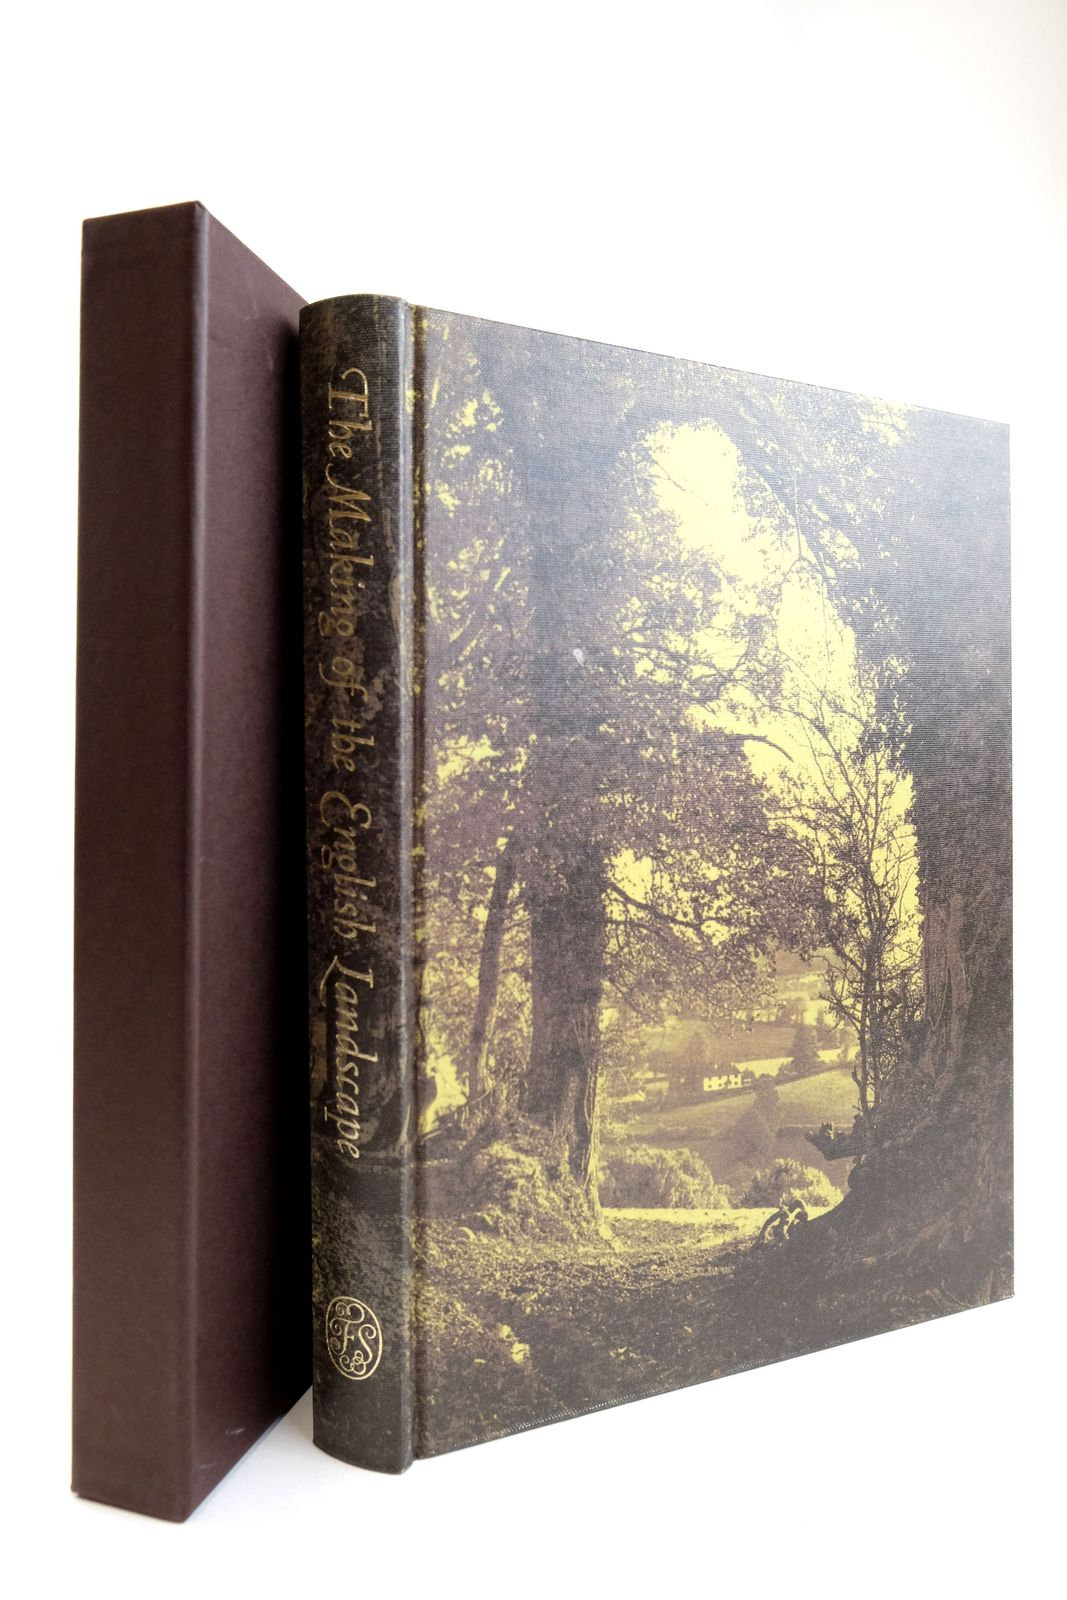 Photo of THE MAKING OF THE ENGLISH LANDSCAPE written by Hoskins, W.G. published by Folio Society (STOCK CODE: 2133212)  for sale by Stella & Rose's Books